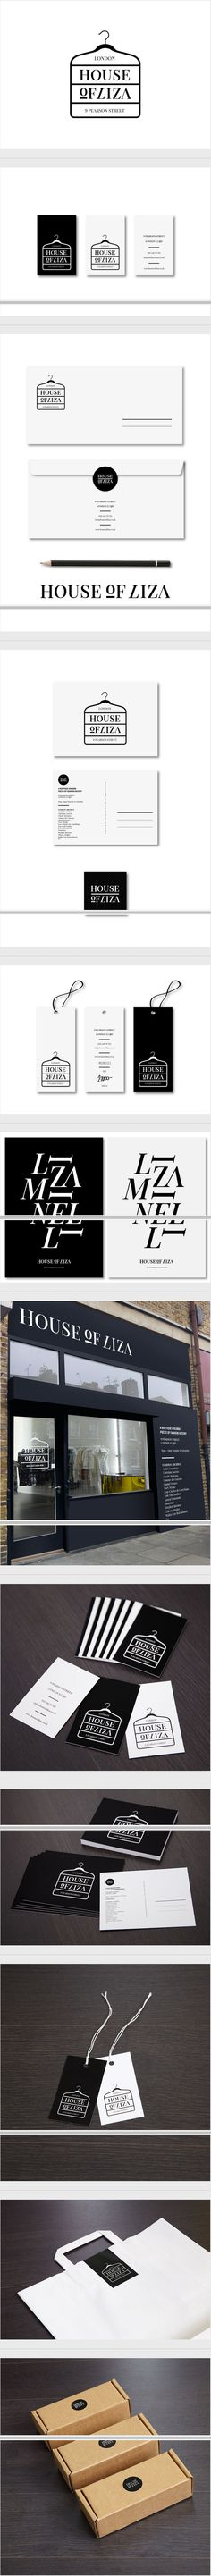 More black and white House of Liza / 2012 #identity #packaging #branding curated by Packaging Diva PD